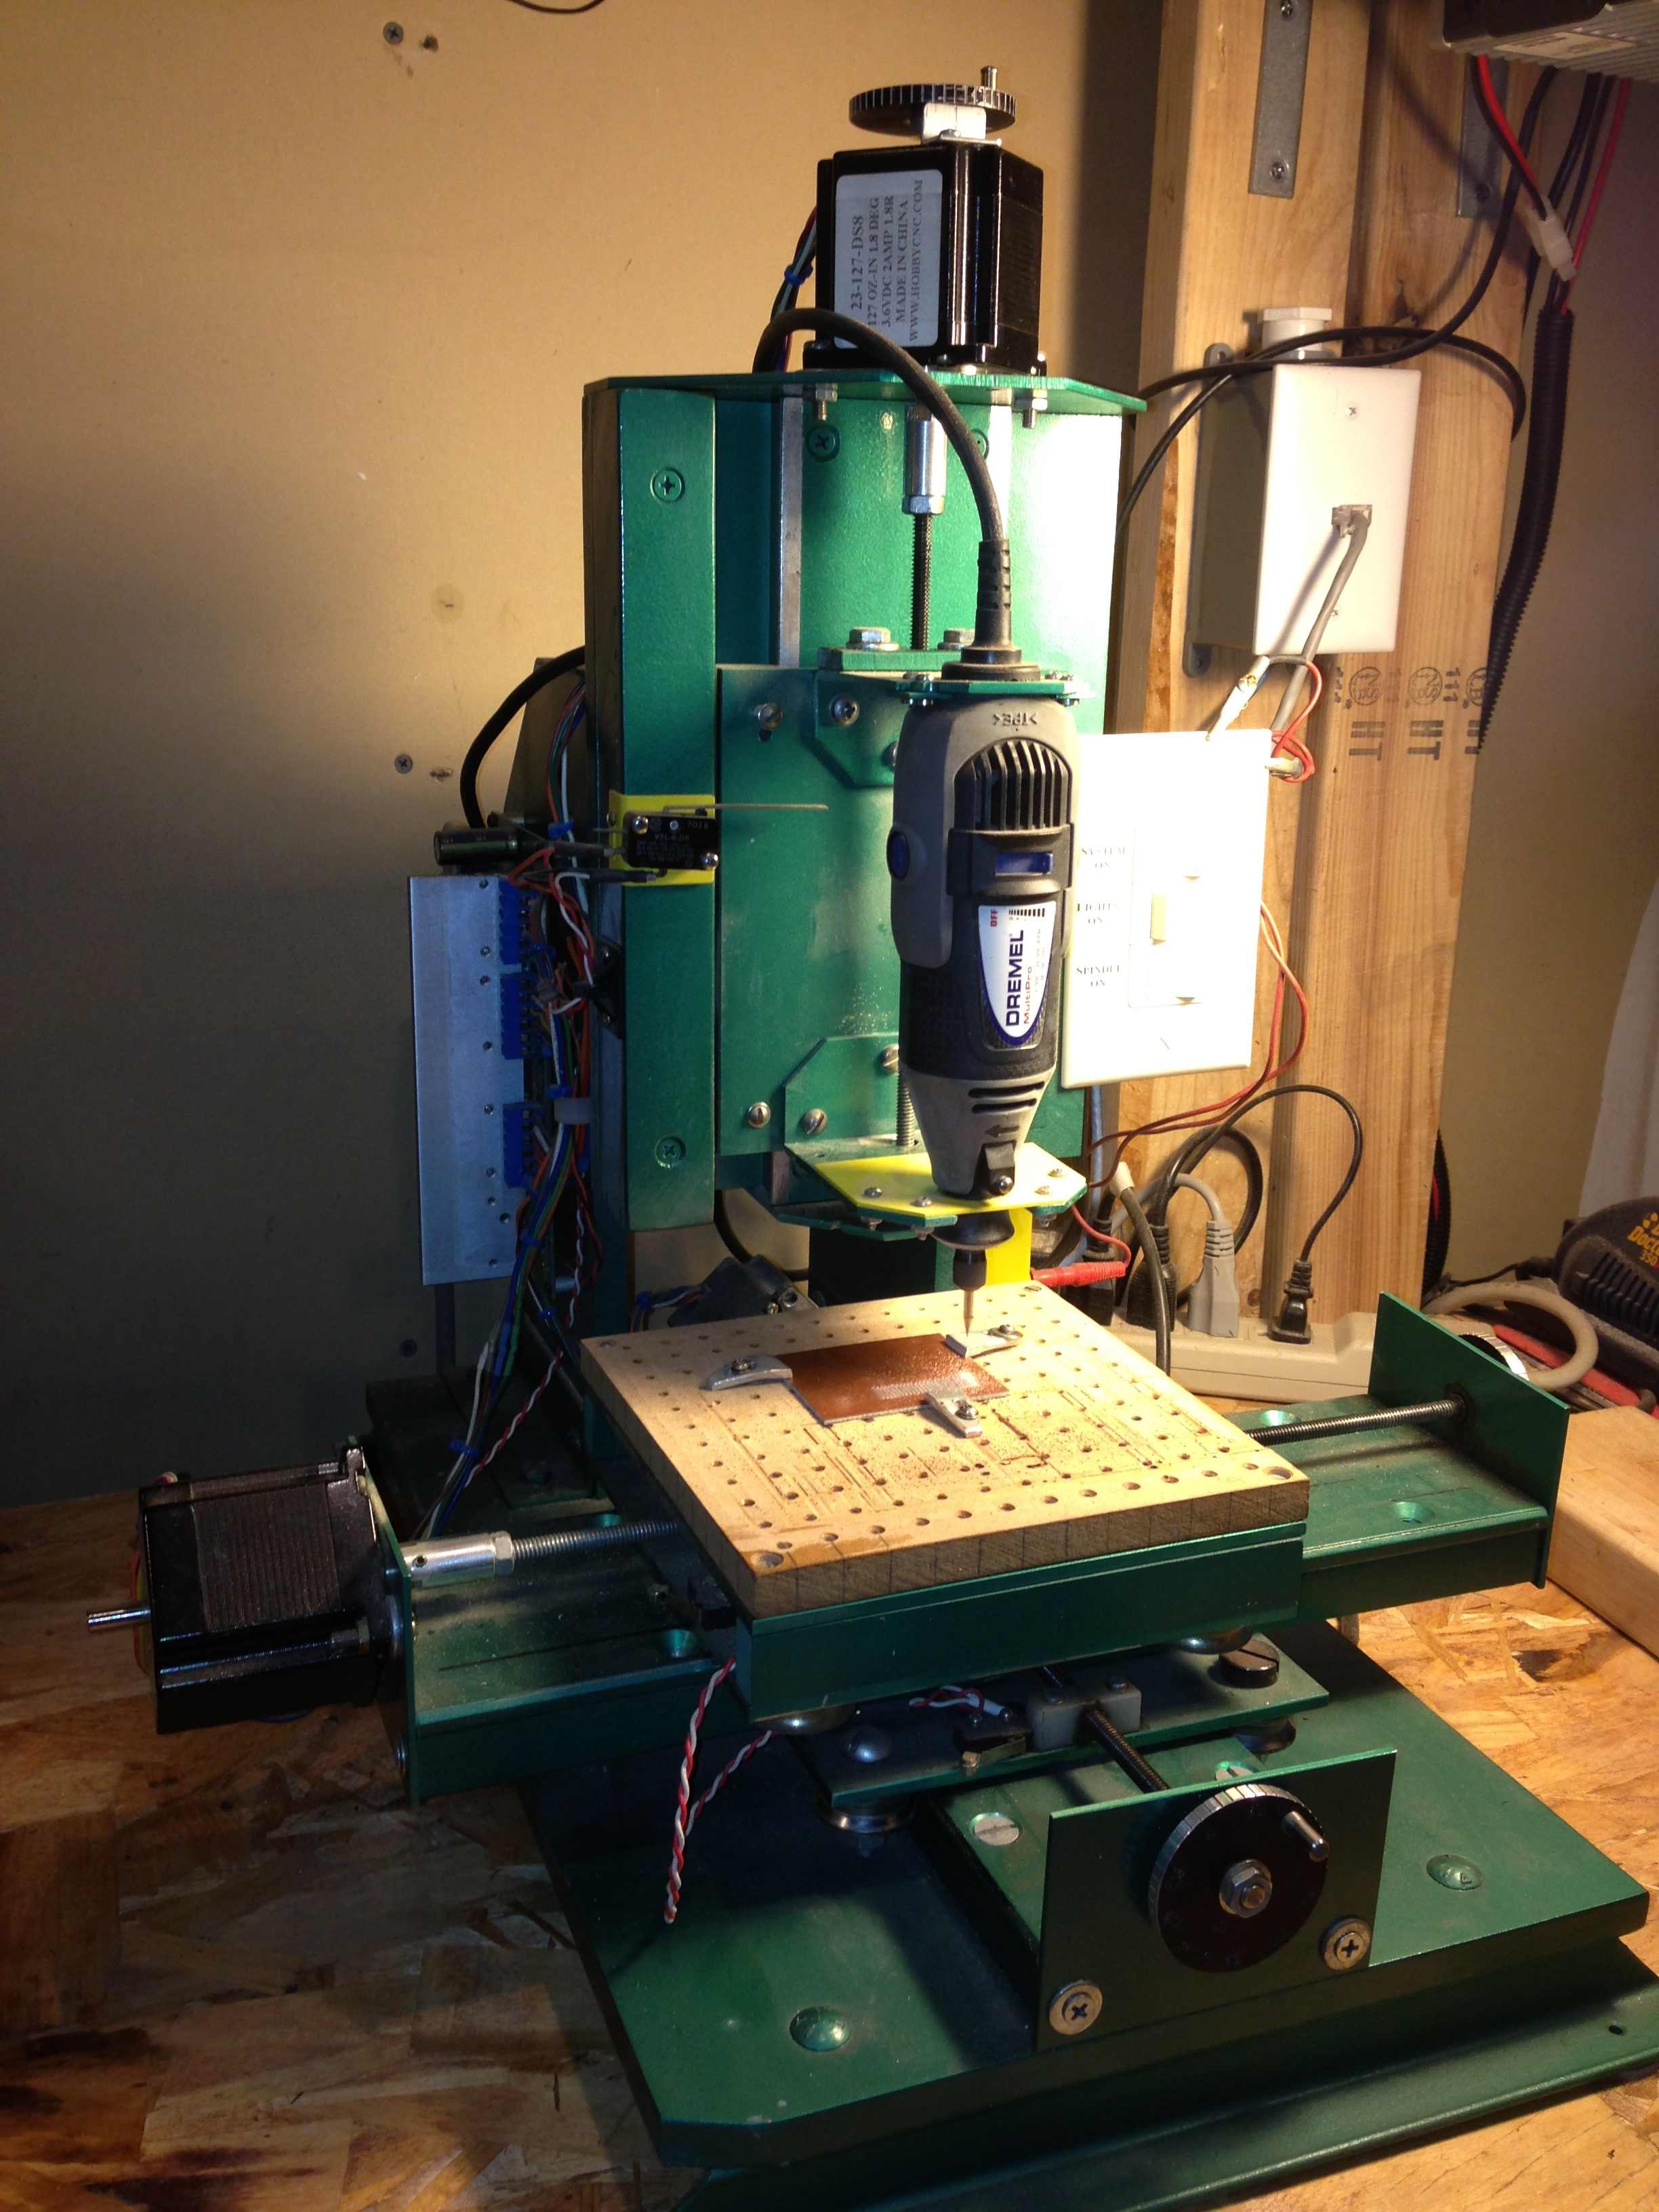 iPhone photo - CNC mill for making PCB prototypes